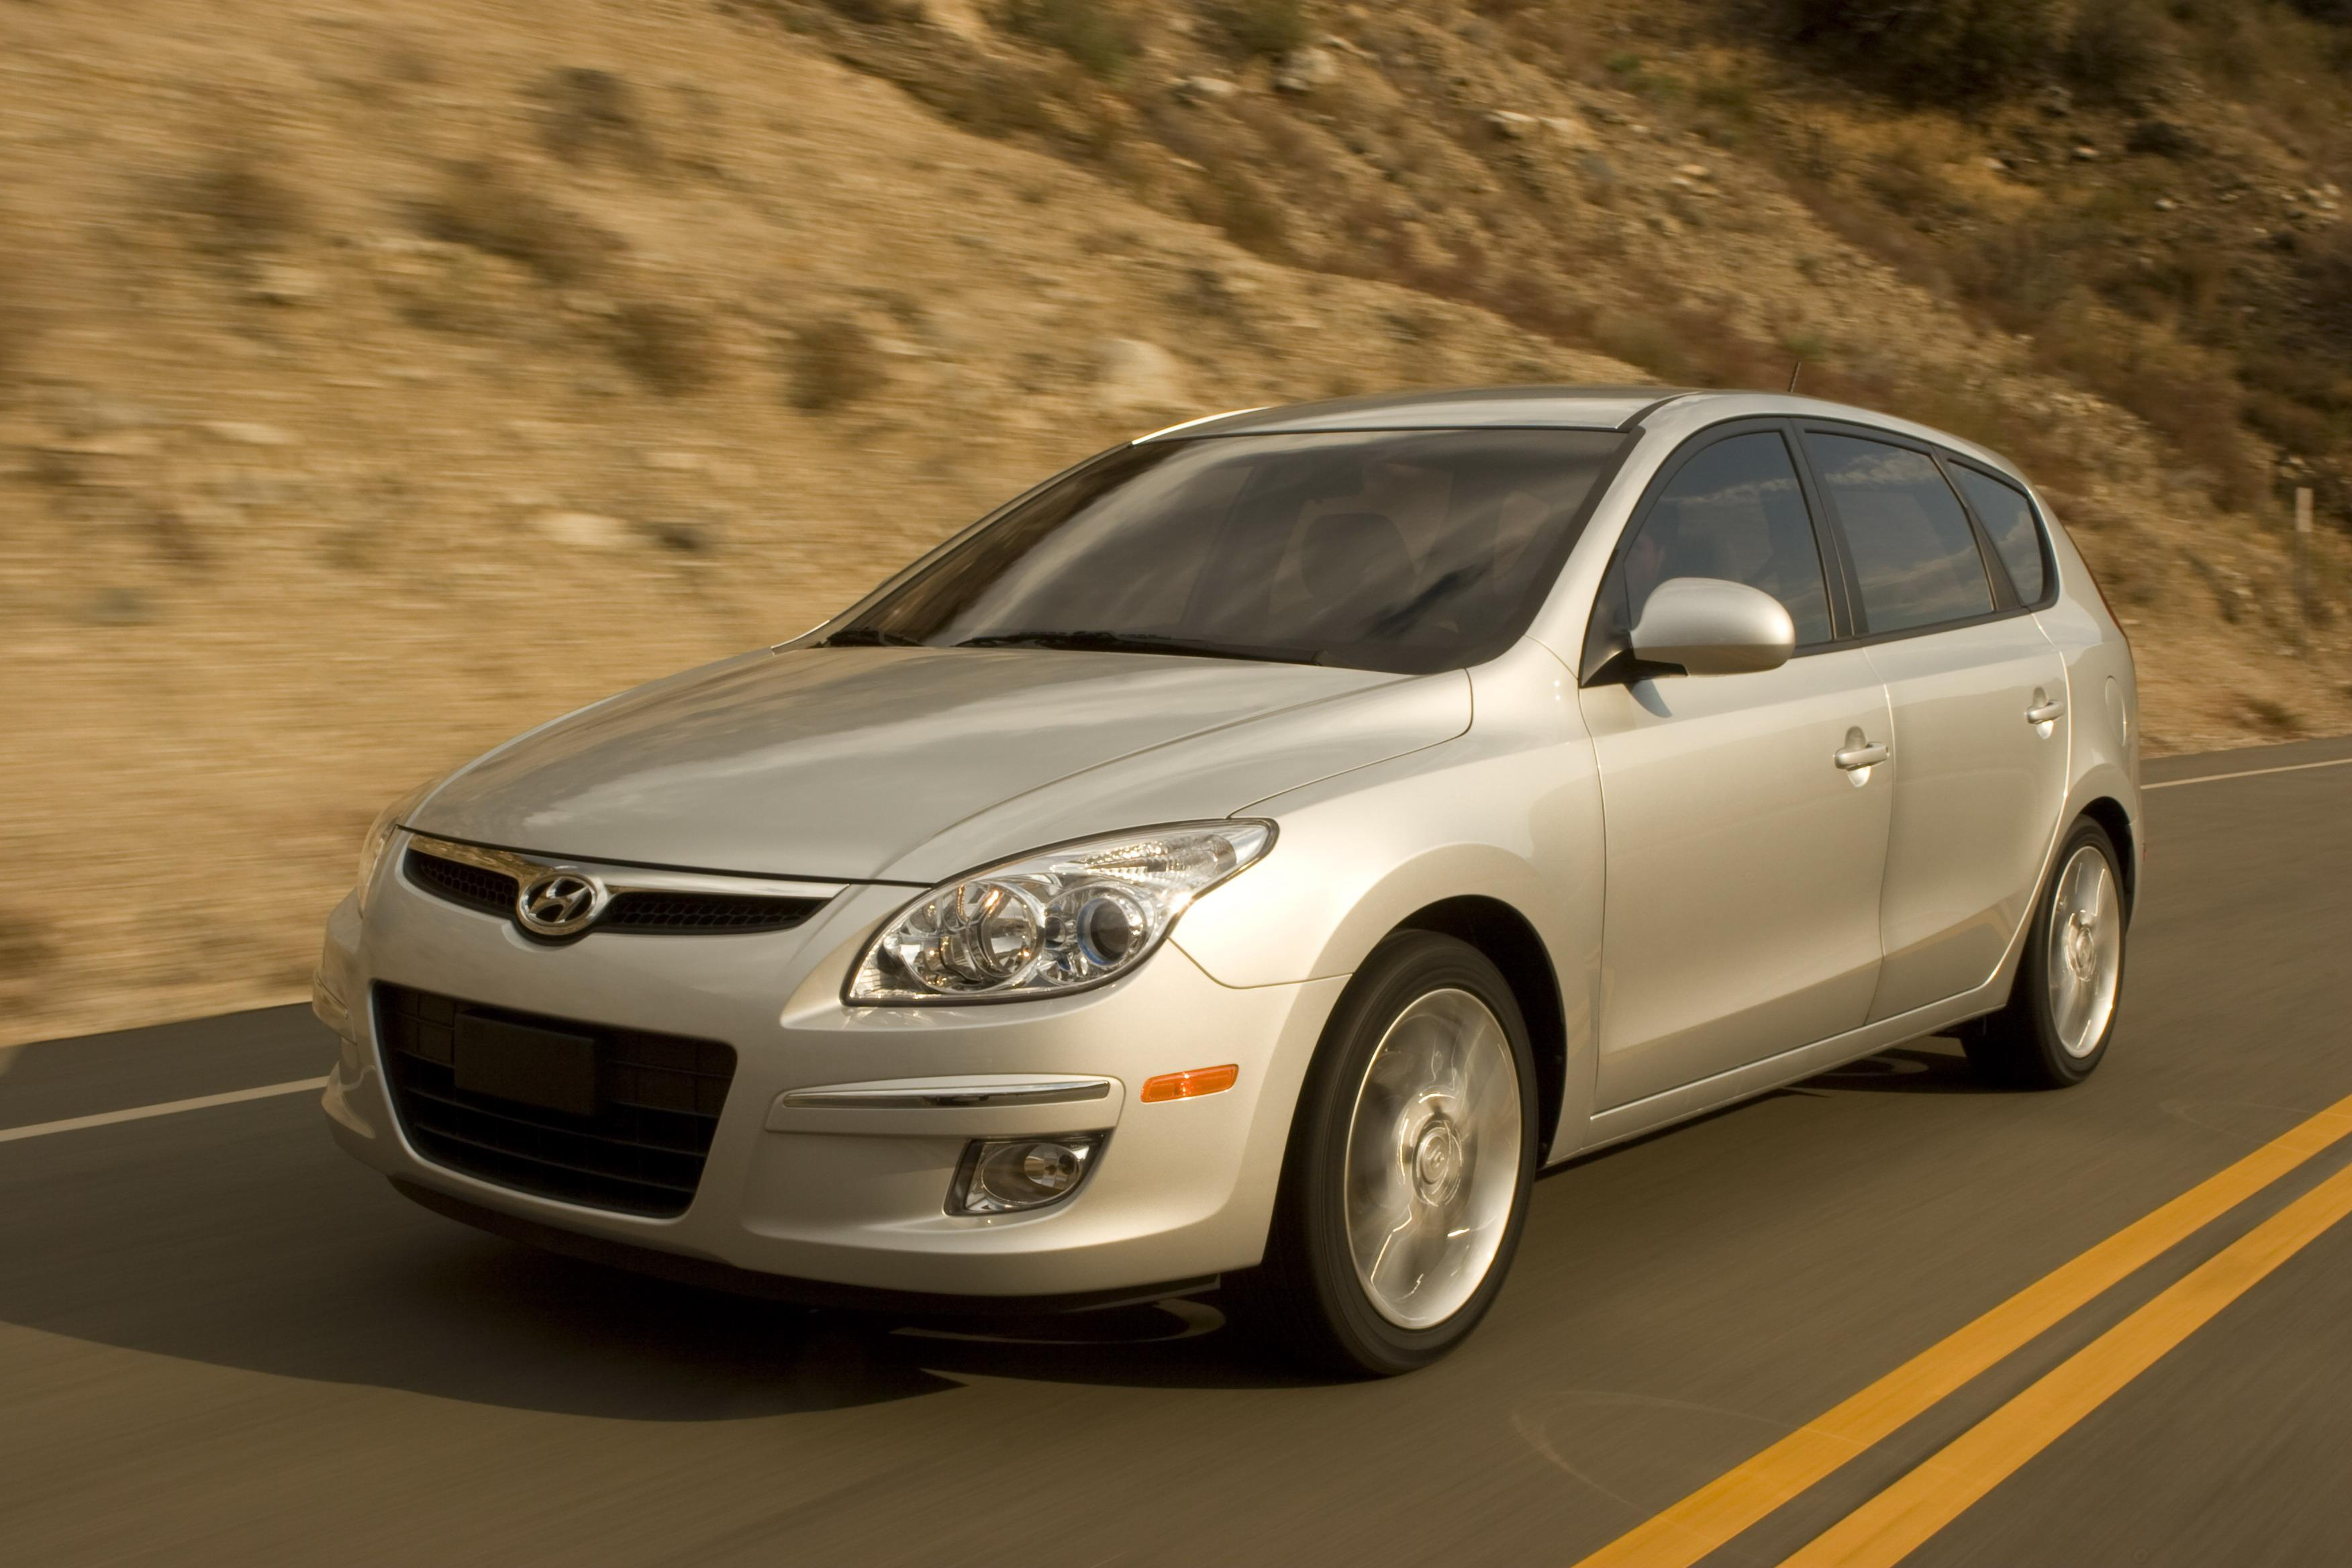 2009 hyundai elantra touring review gallery top speed. Black Bedroom Furniture Sets. Home Design Ideas